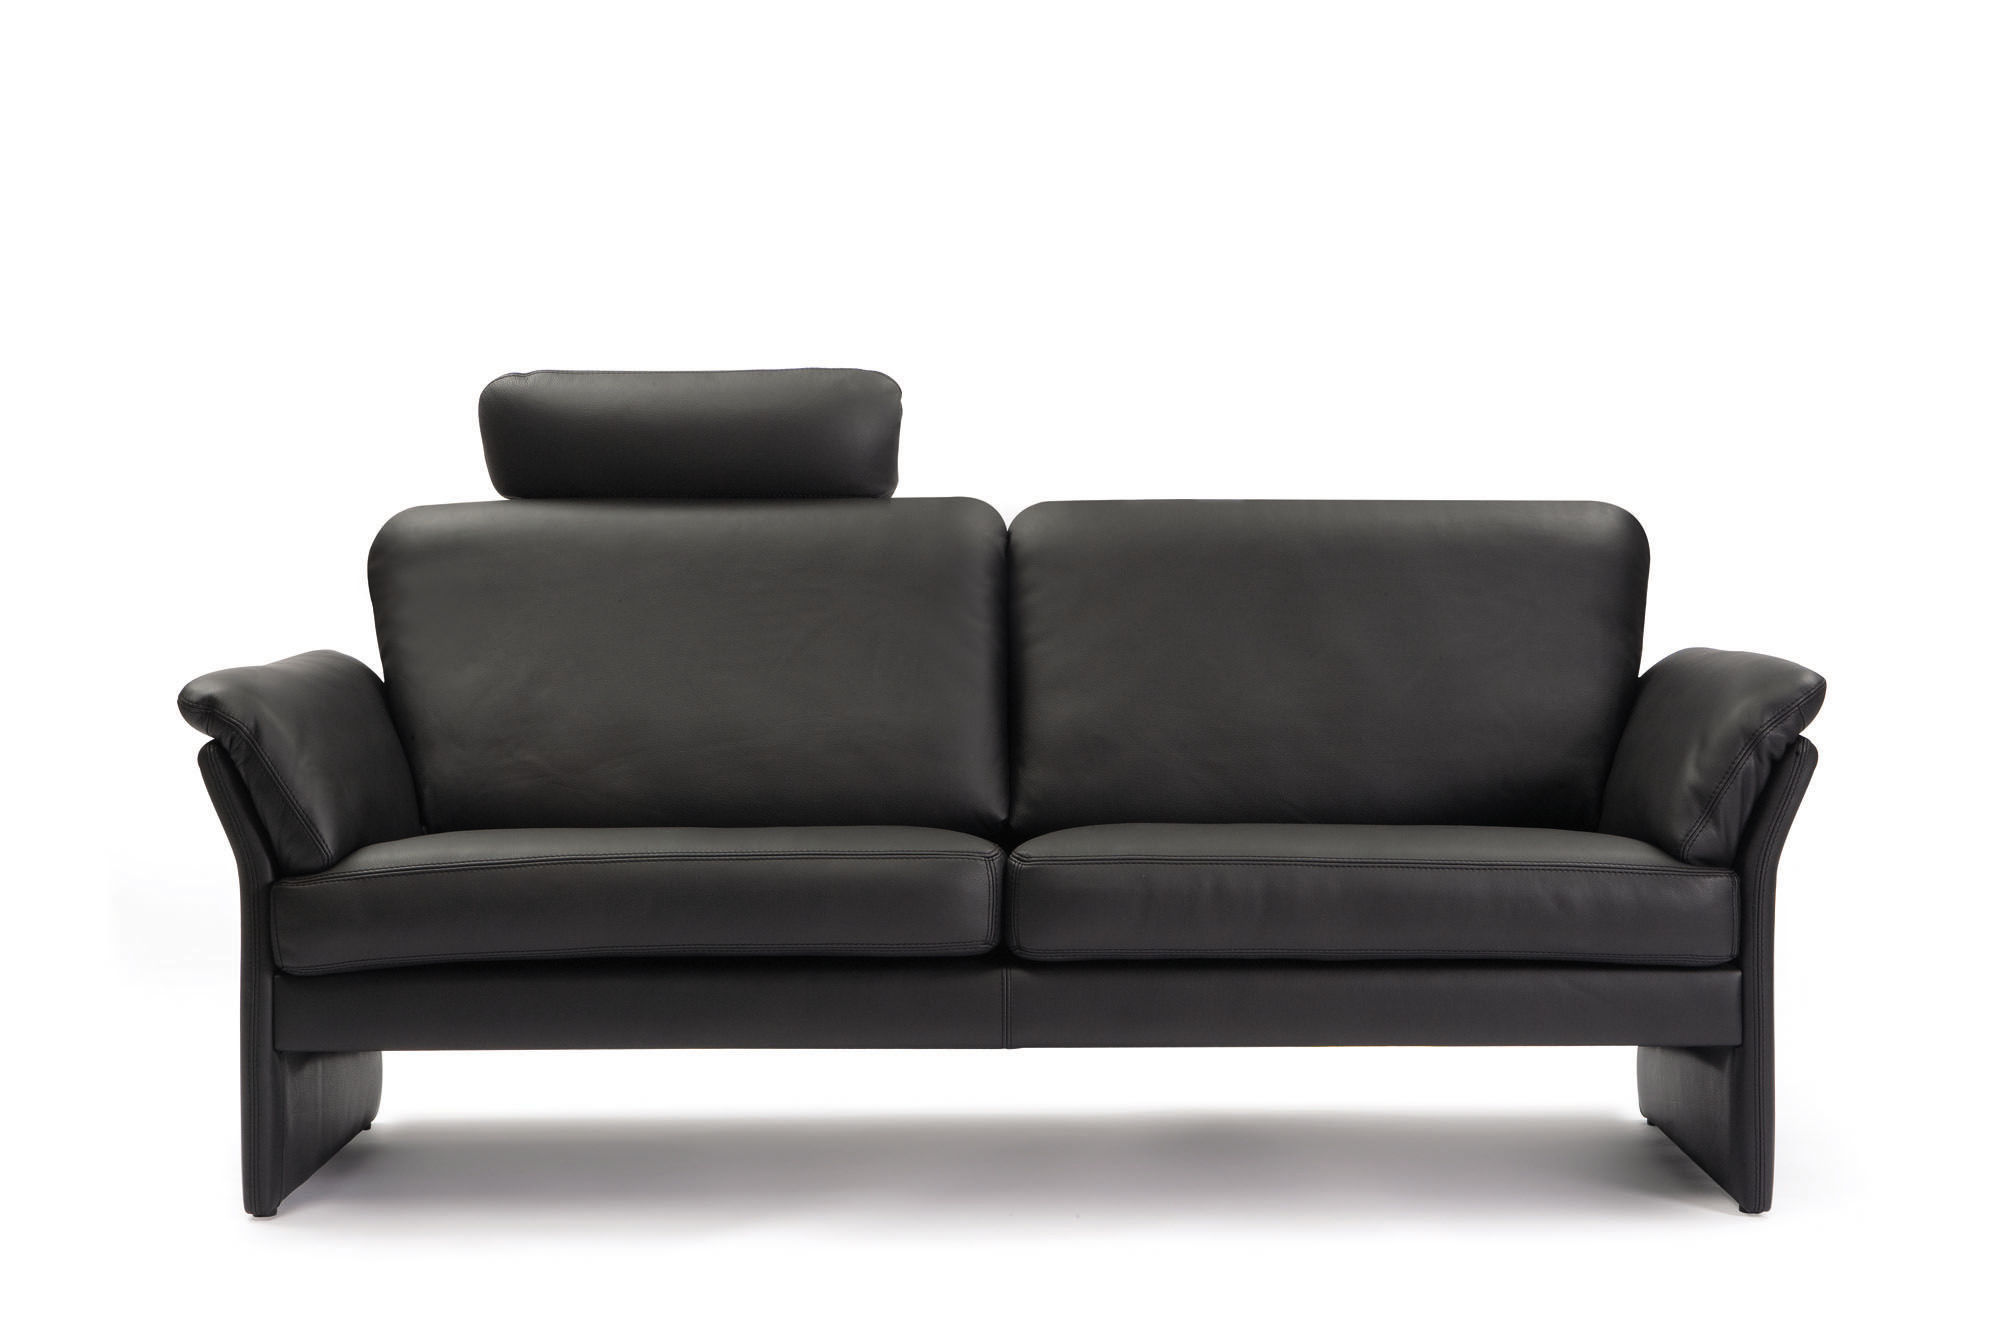 ... Compact Sofa / Contemporary / Leather / 2 Person